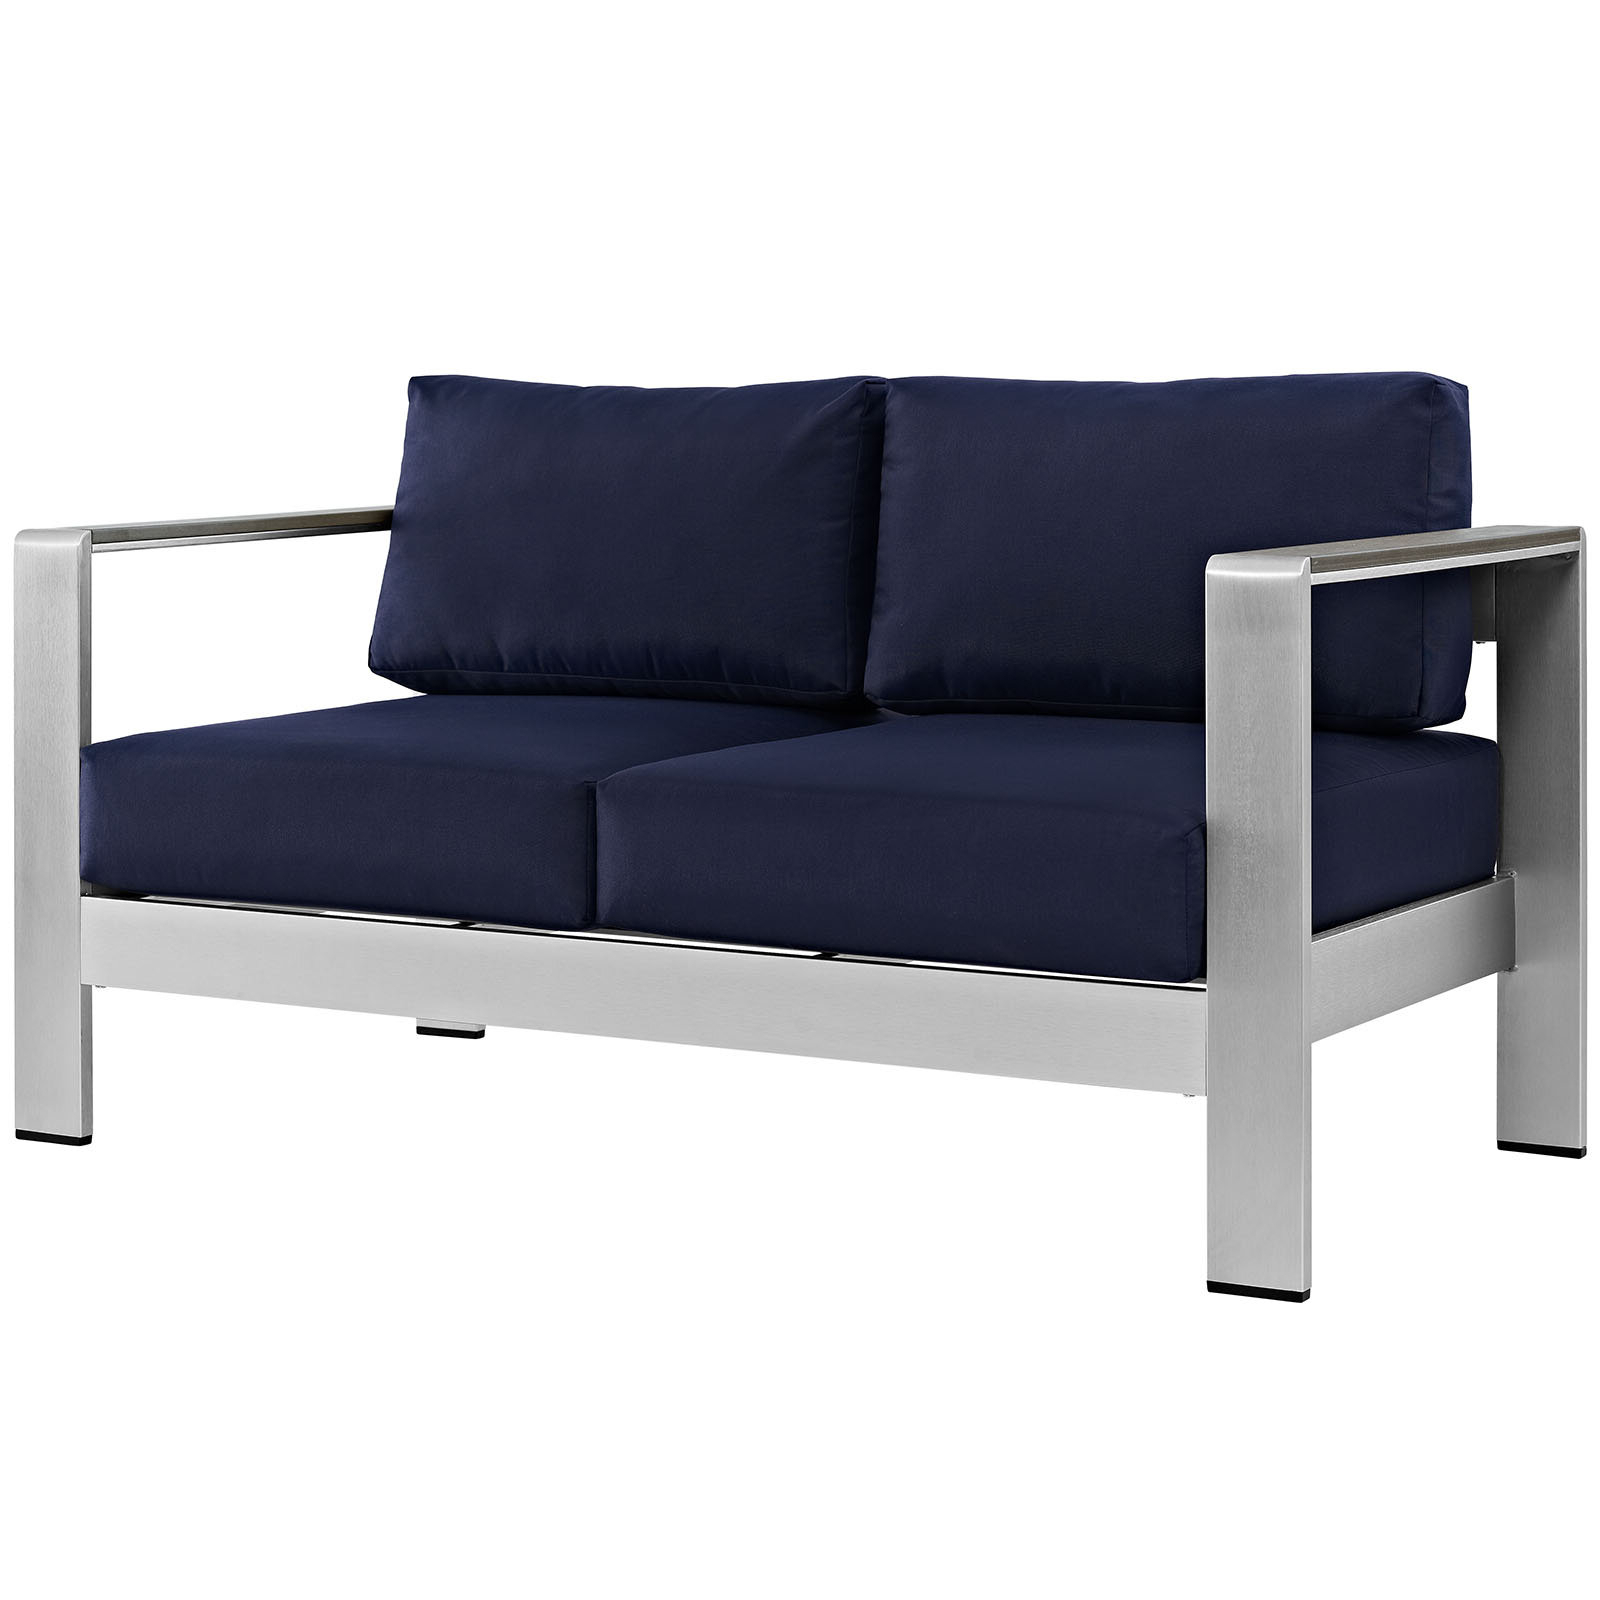 Best And Newest Kari Loveseats With Sunbrella Cushions Pertaining To Bristol Loveseat With Cushions (View 6 of 25)